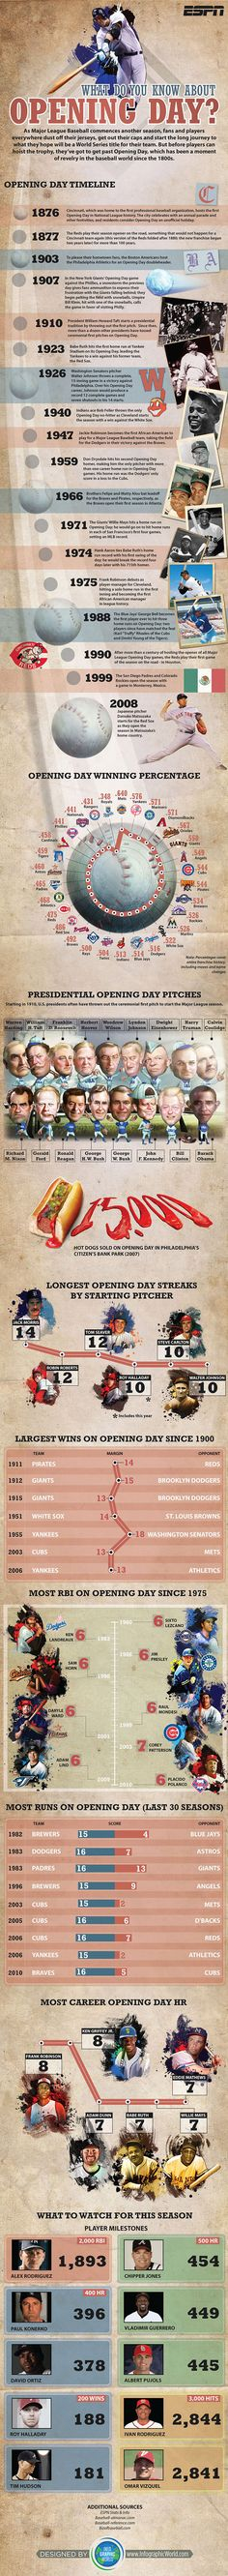 Take a trip through baseball history with our Ultimate MLB Opening Day Infographic - ESPN